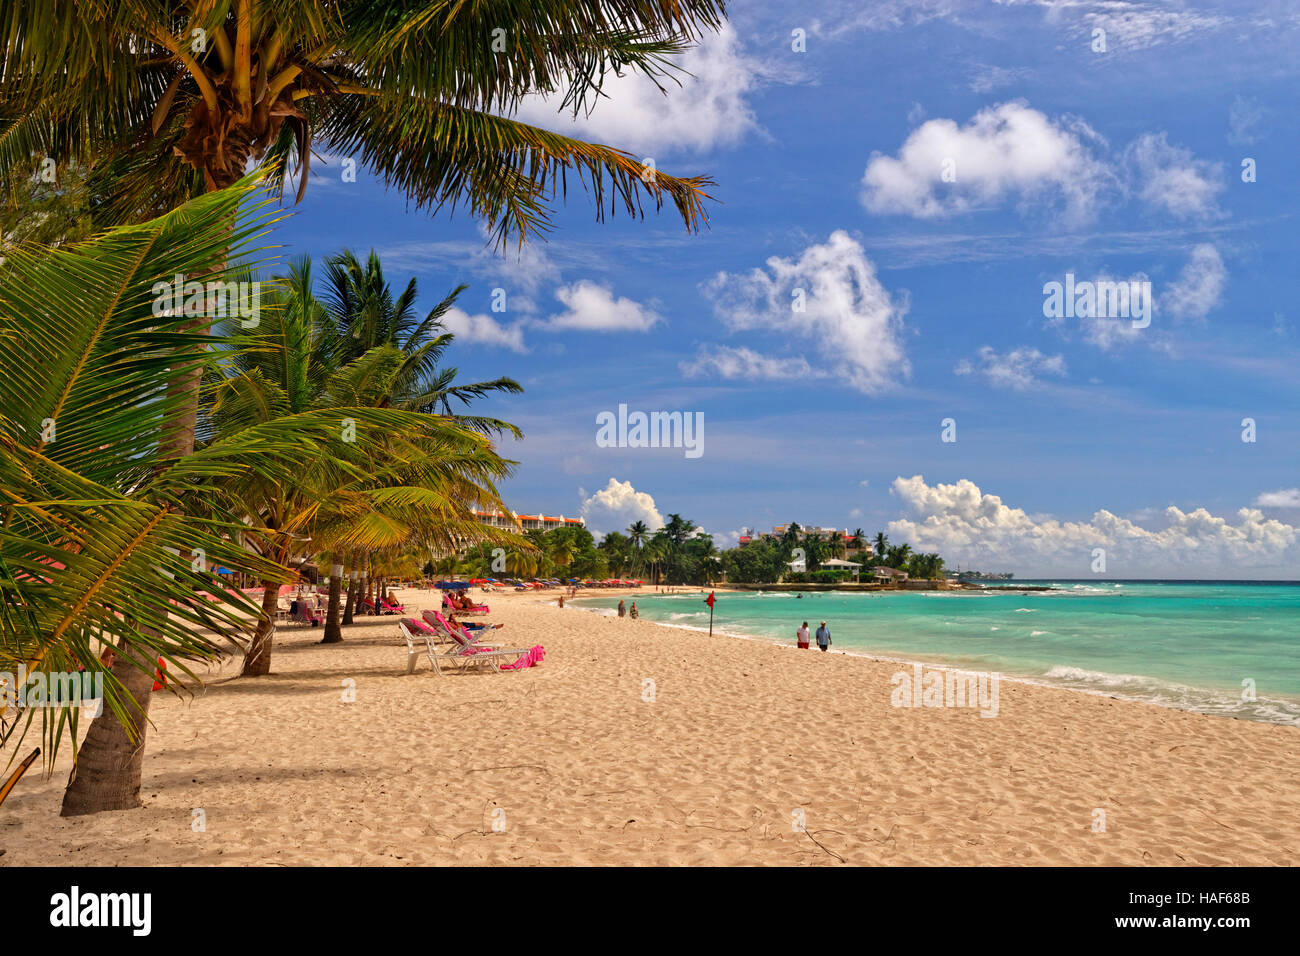 Dover Beach in front of Southern Palms Hotel, St. Lawrence Gap, Barbados, Caribbean. - Stock Image